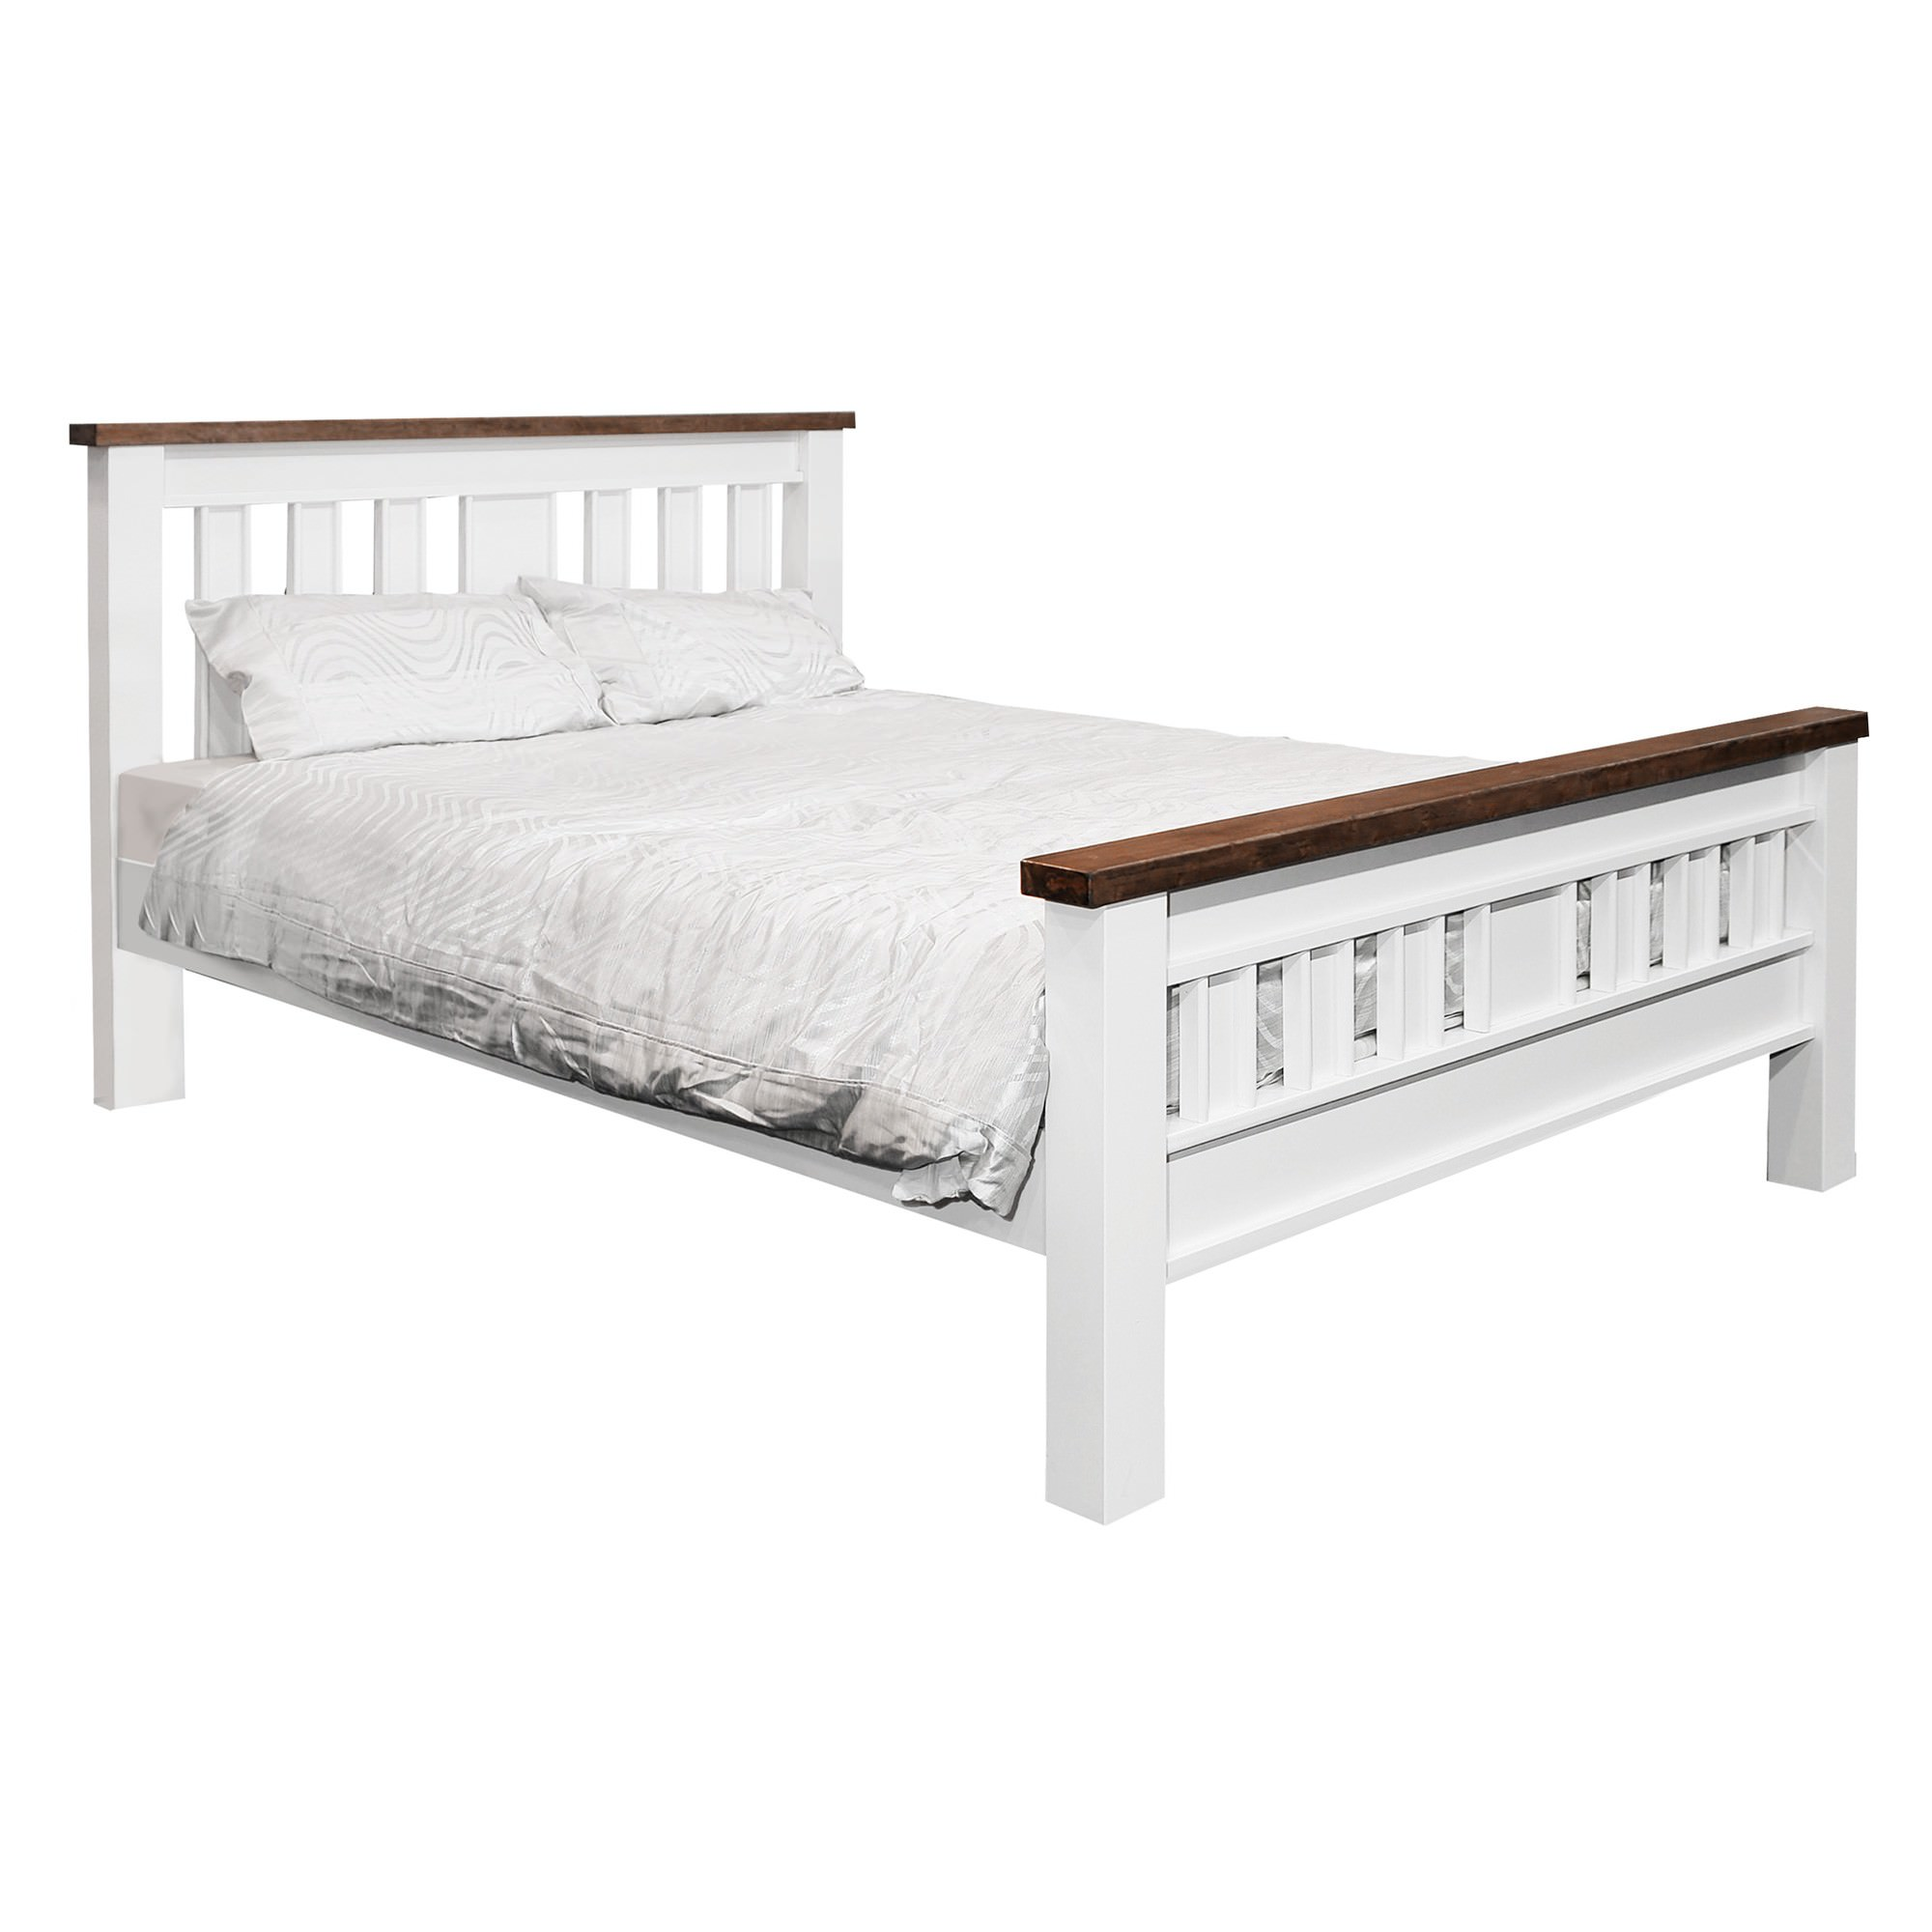 Imperial Wooden Bed, Queen